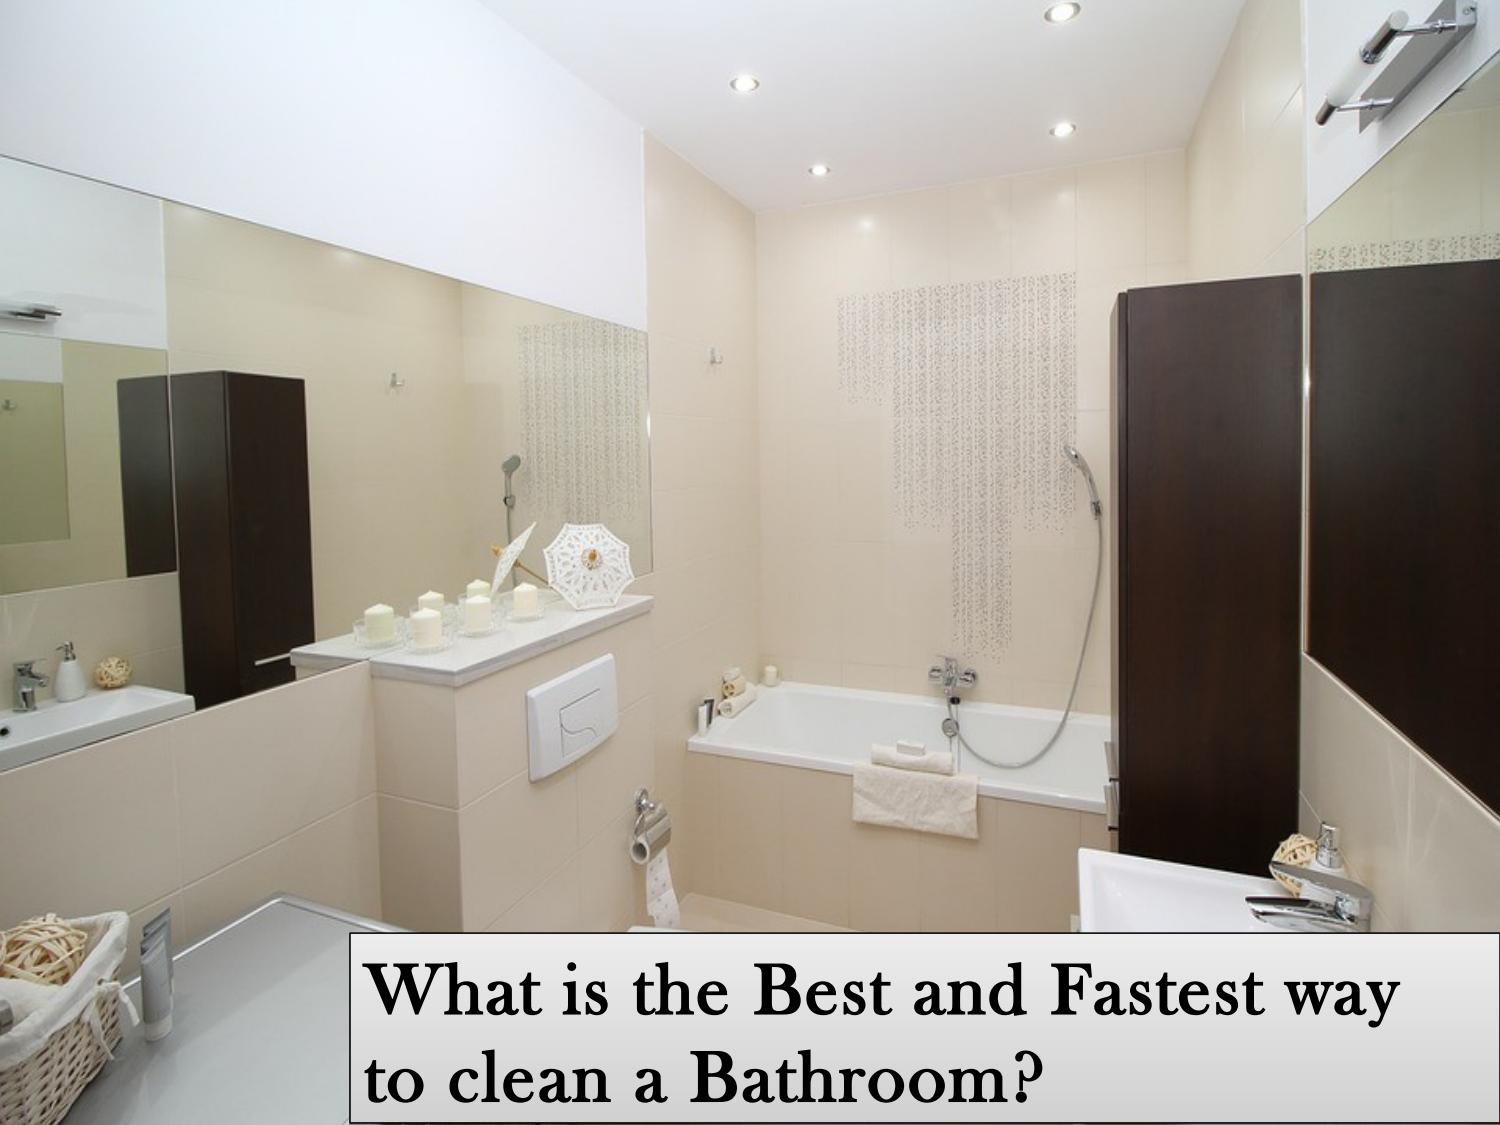 Professional Bathroom Cleaning Tips By Bciccanberraa Issuu - Fastest way to clean a bathroom